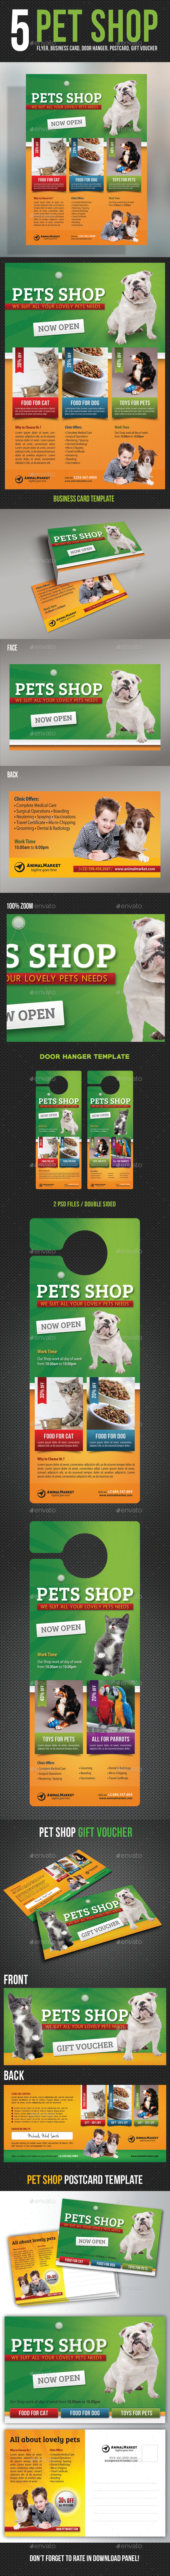 5 in 1 Pet Shop Templates Bundle - Flyers Print Templates